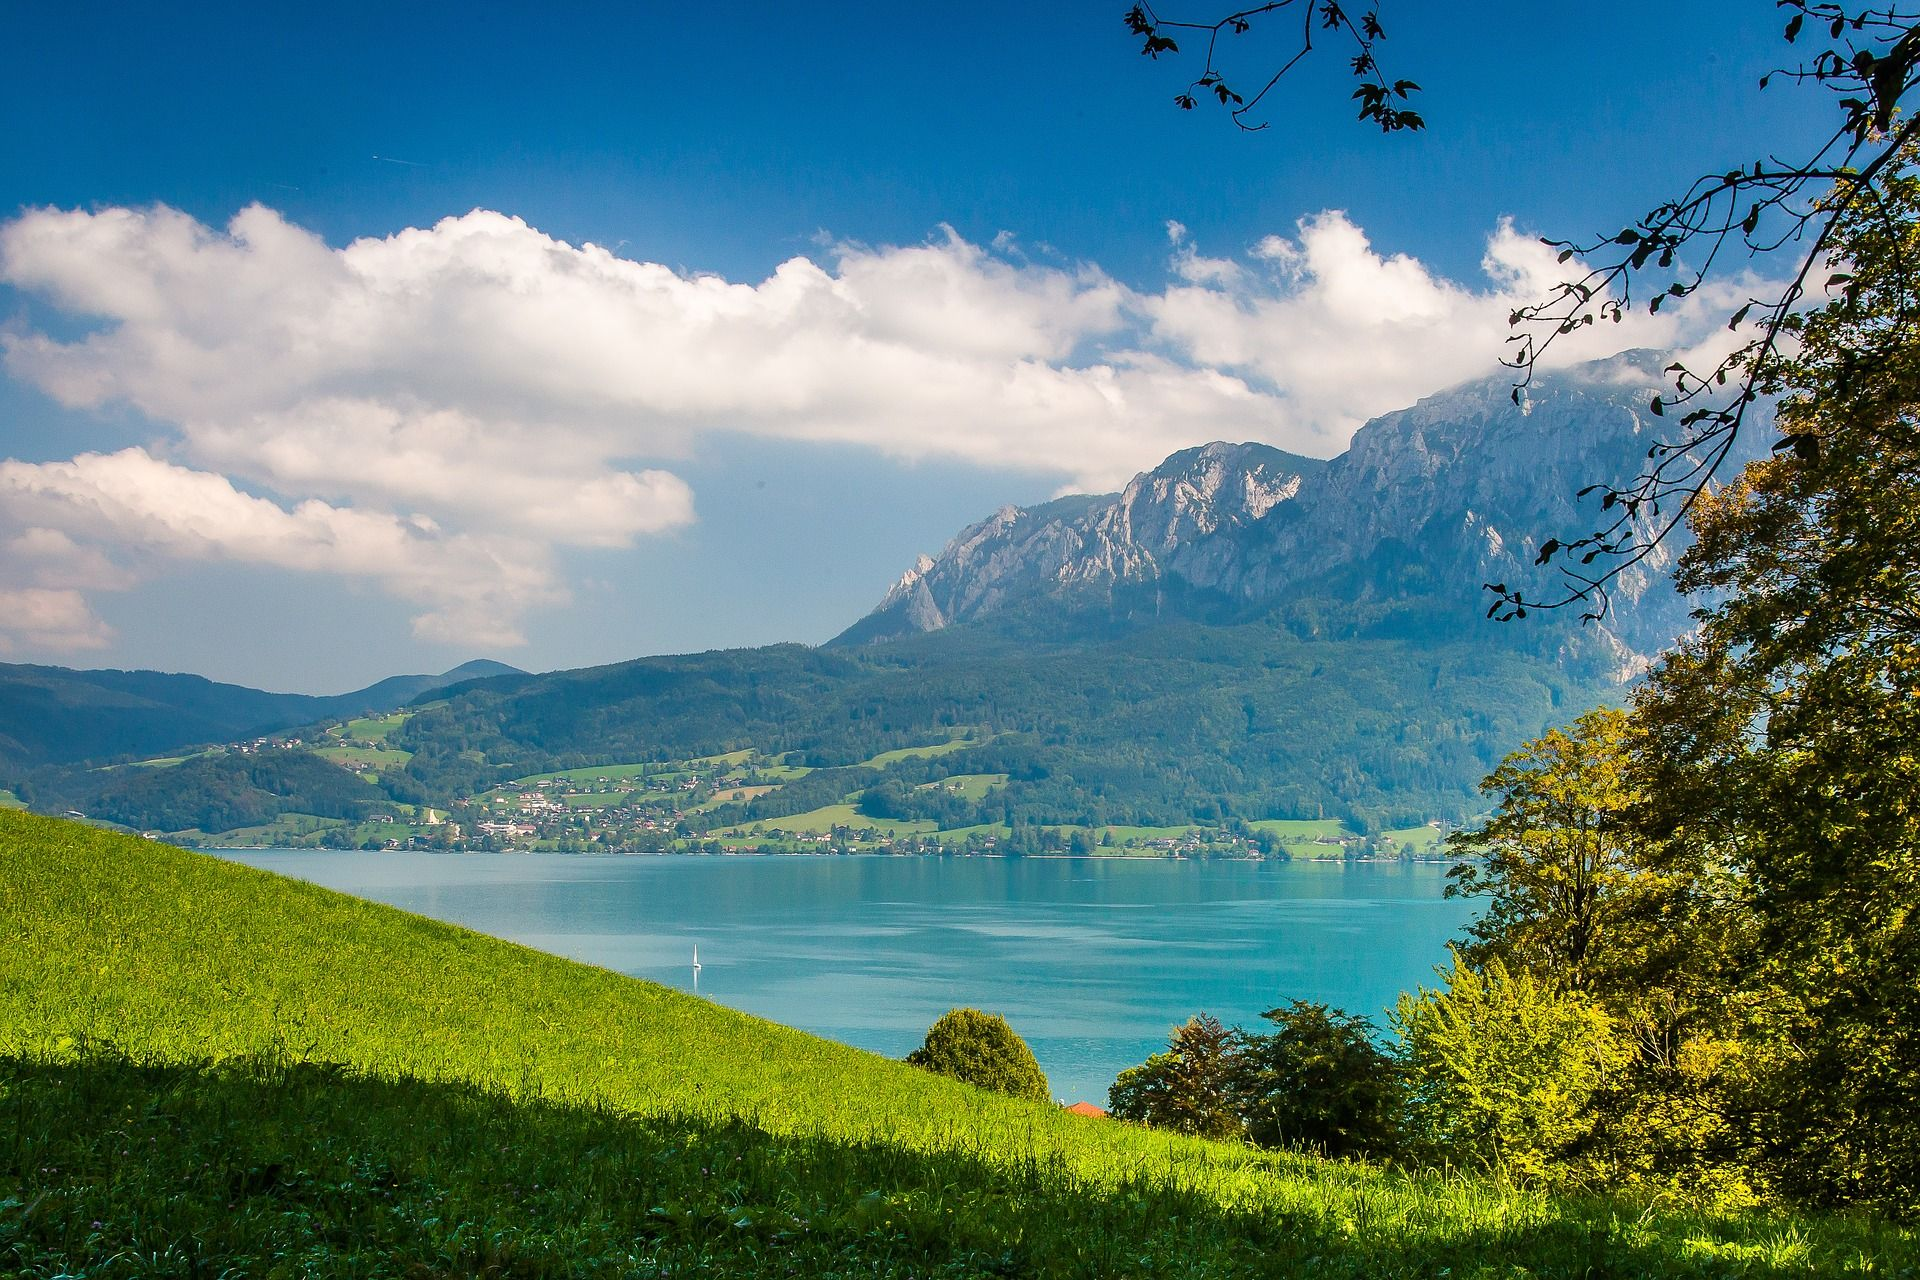 attersee-3721020_1920Seeblick (c)Pixabay.com free